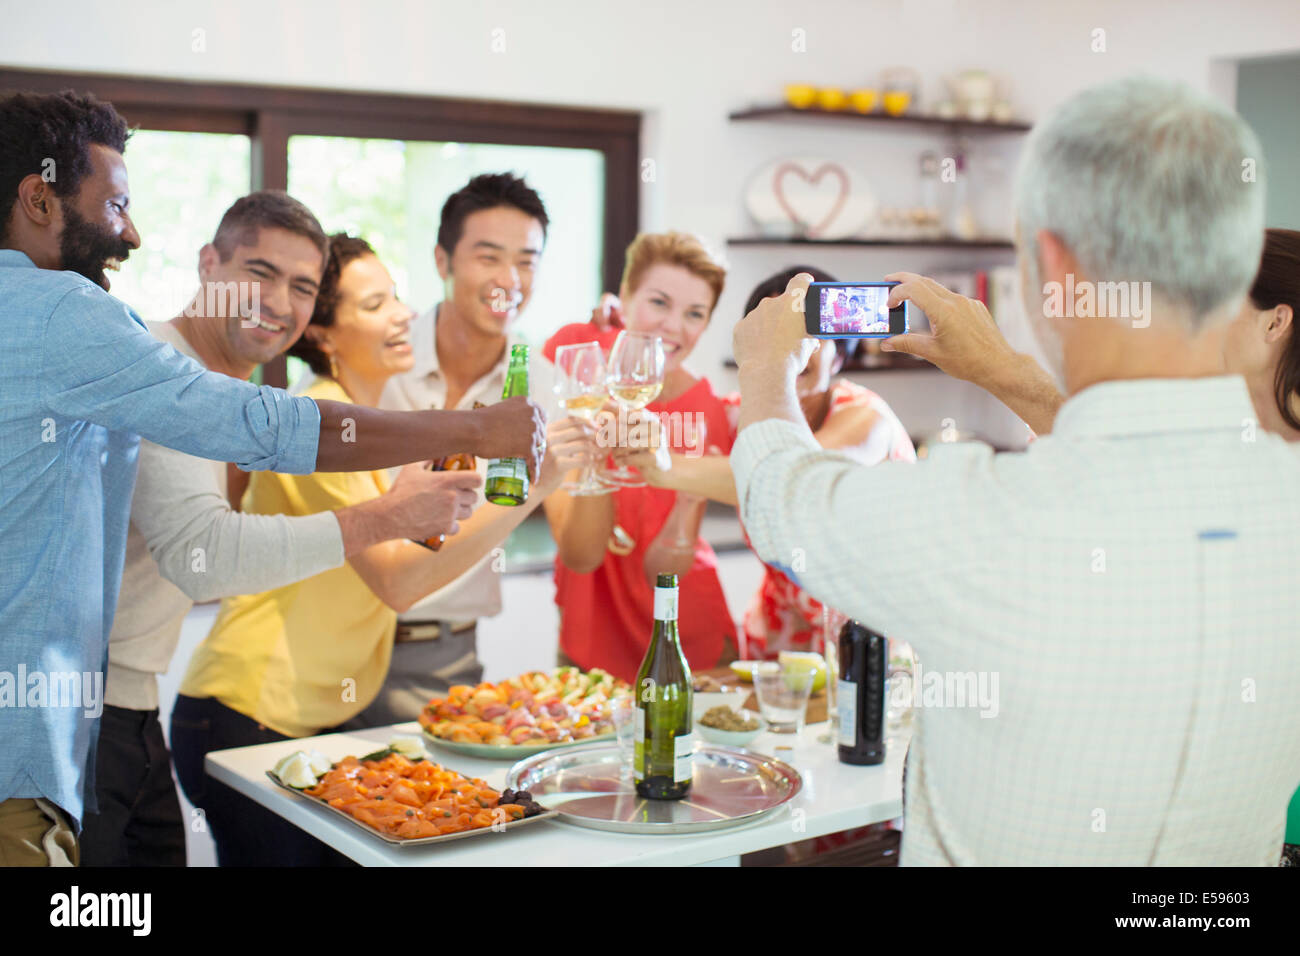 Man taking picture of friends at party - Stock Image